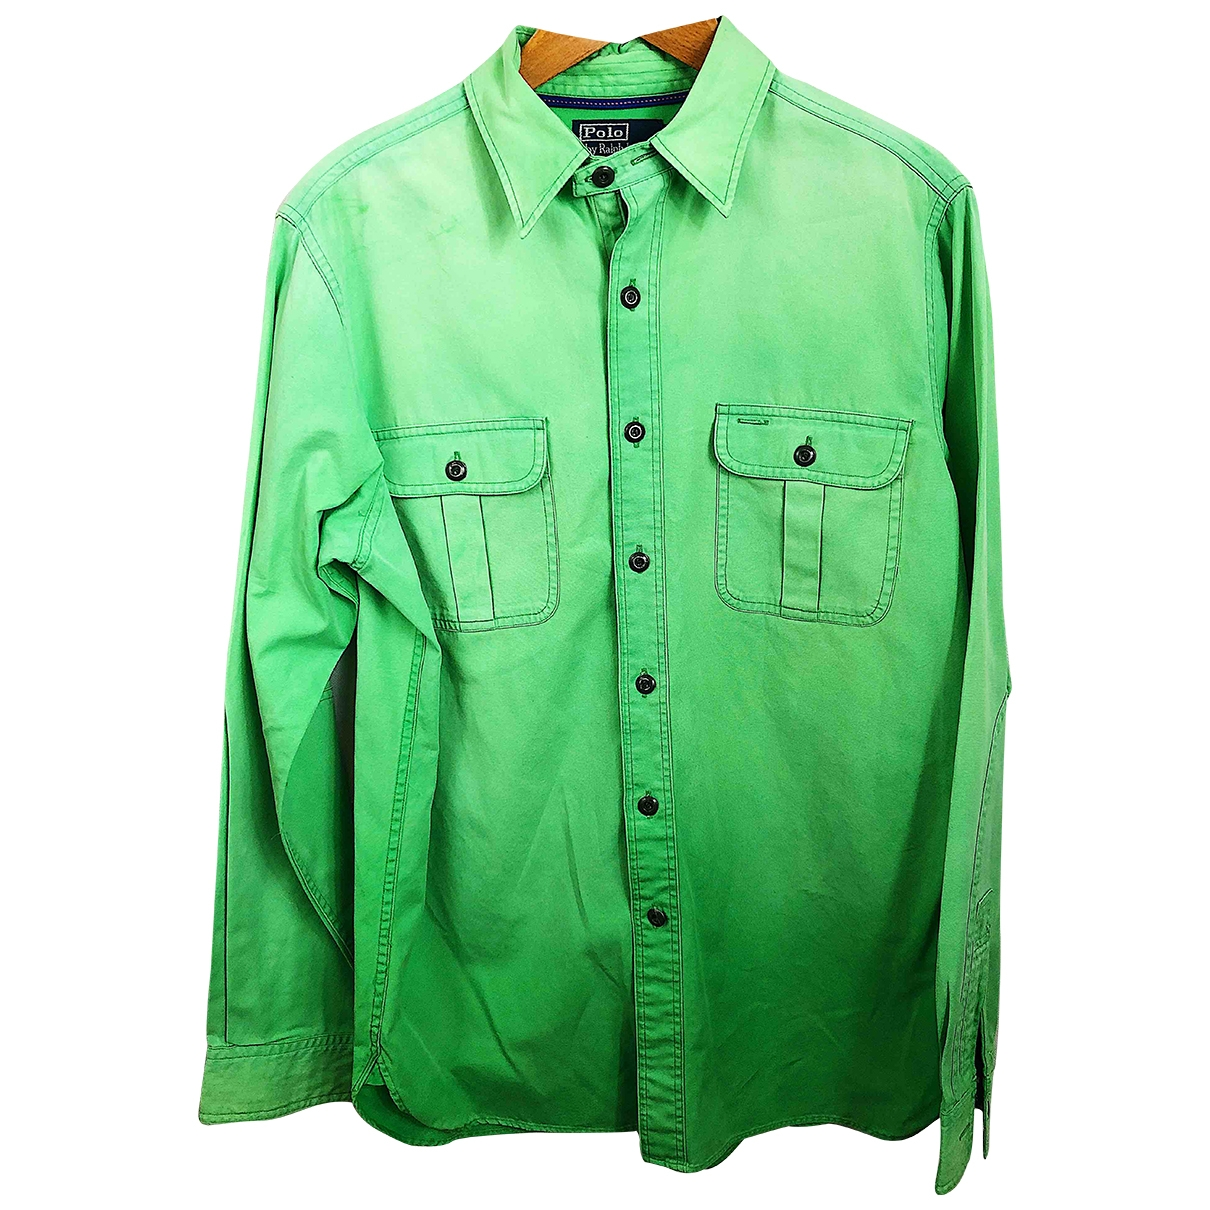 Polo Ralph Lauren \N Green Cotton Shirts for Men M International